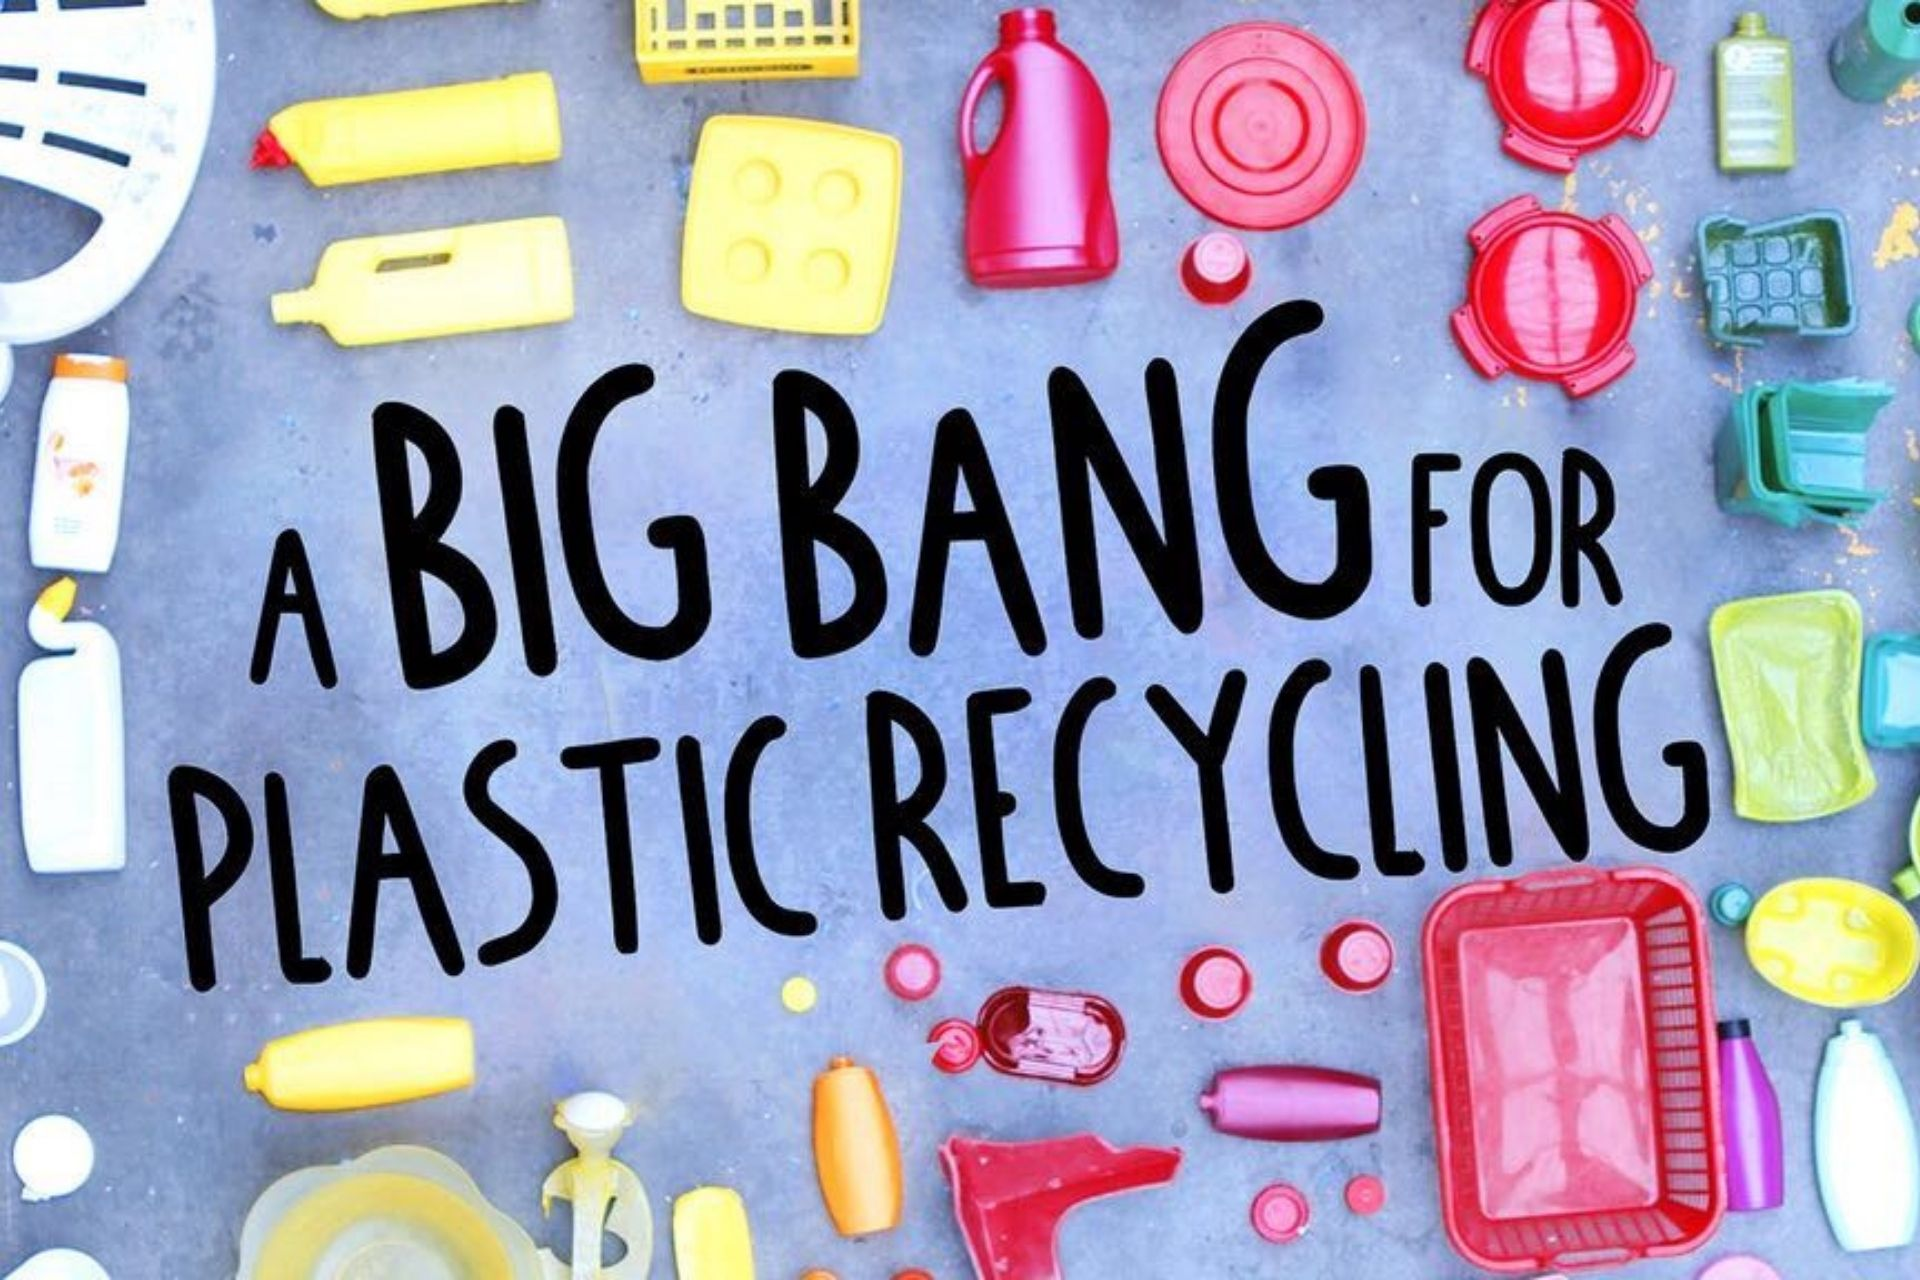 "Version 4 poster displaying colourful plastic objects ""a big bang for plastic recycling""."